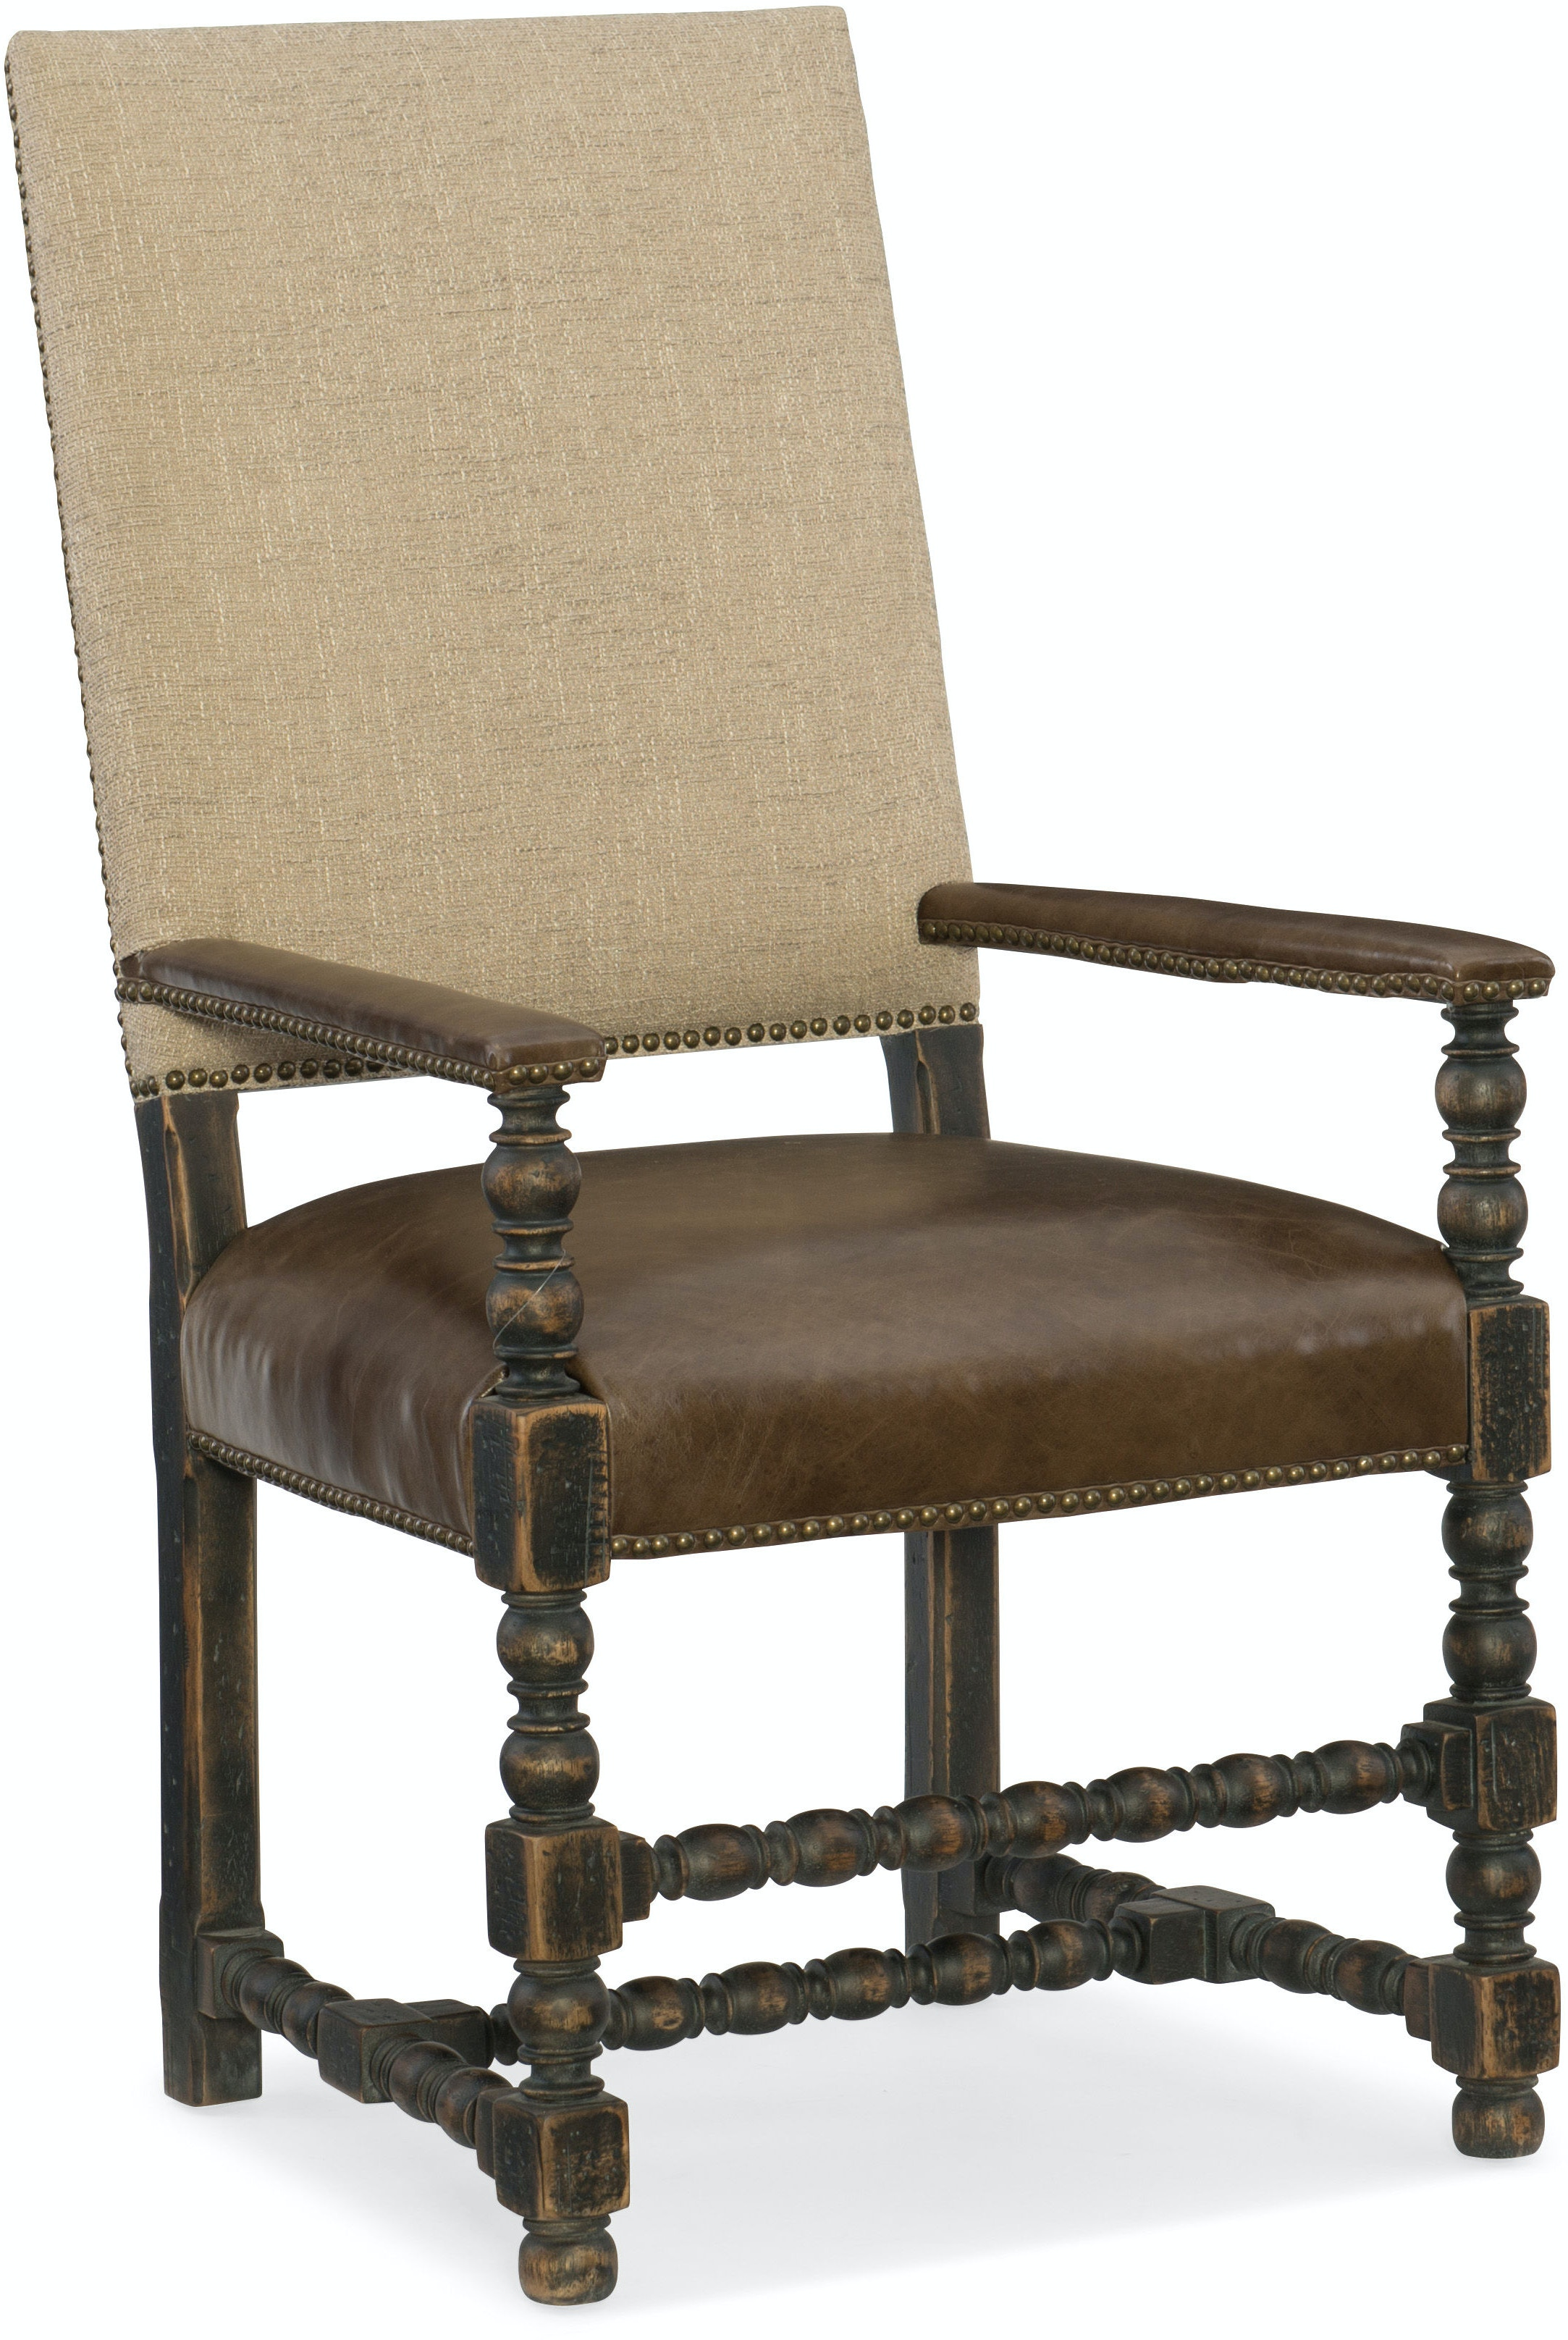 Hooker Furniture Dining Room fort Upholstered Arm Chair 5960